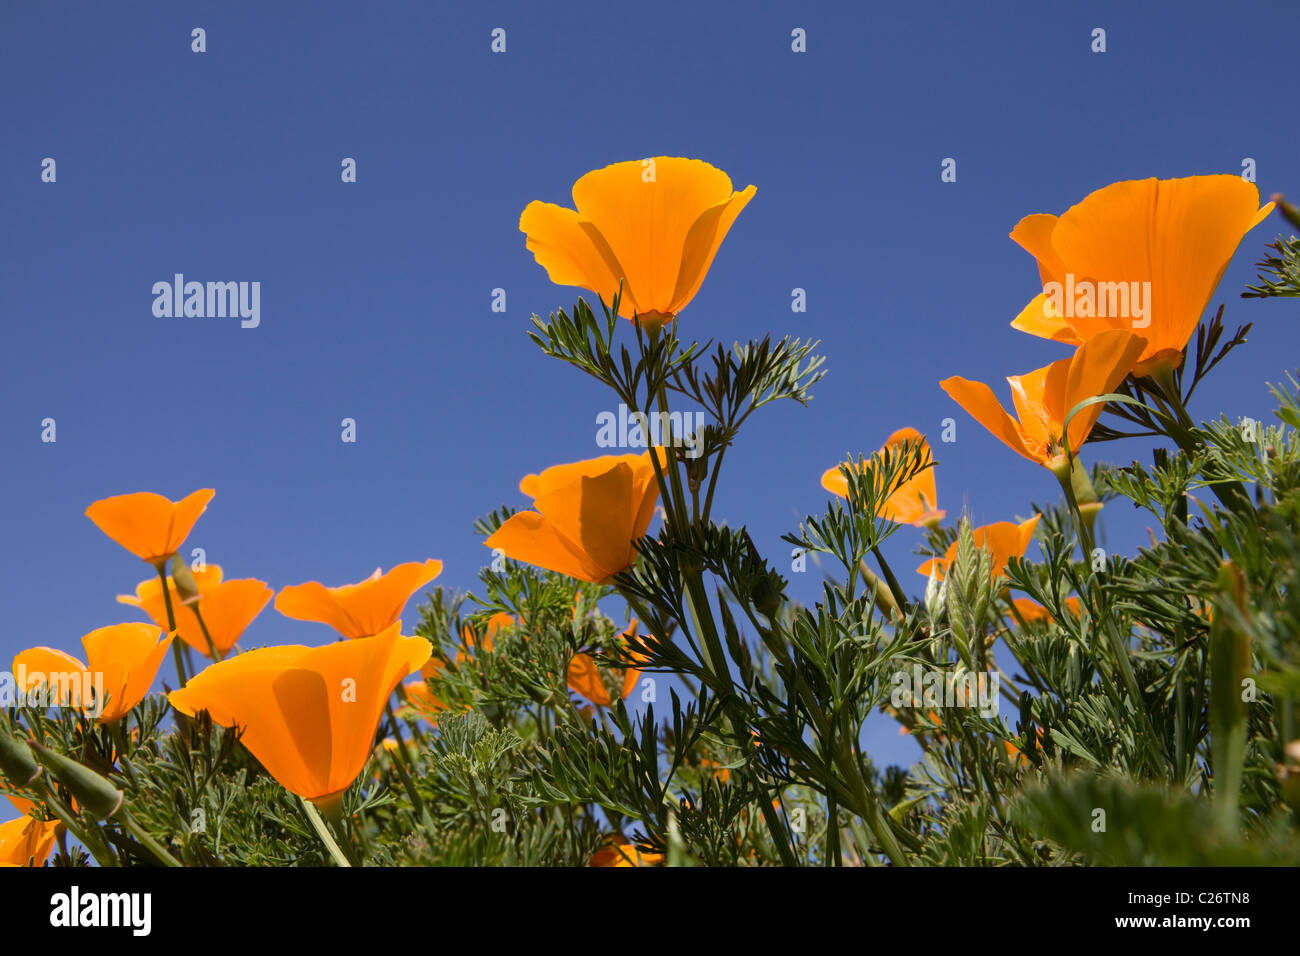 A field of California Poppies - Point Buchon State Marine Reserve and Marine Conservation Area - California USA - Stock Image